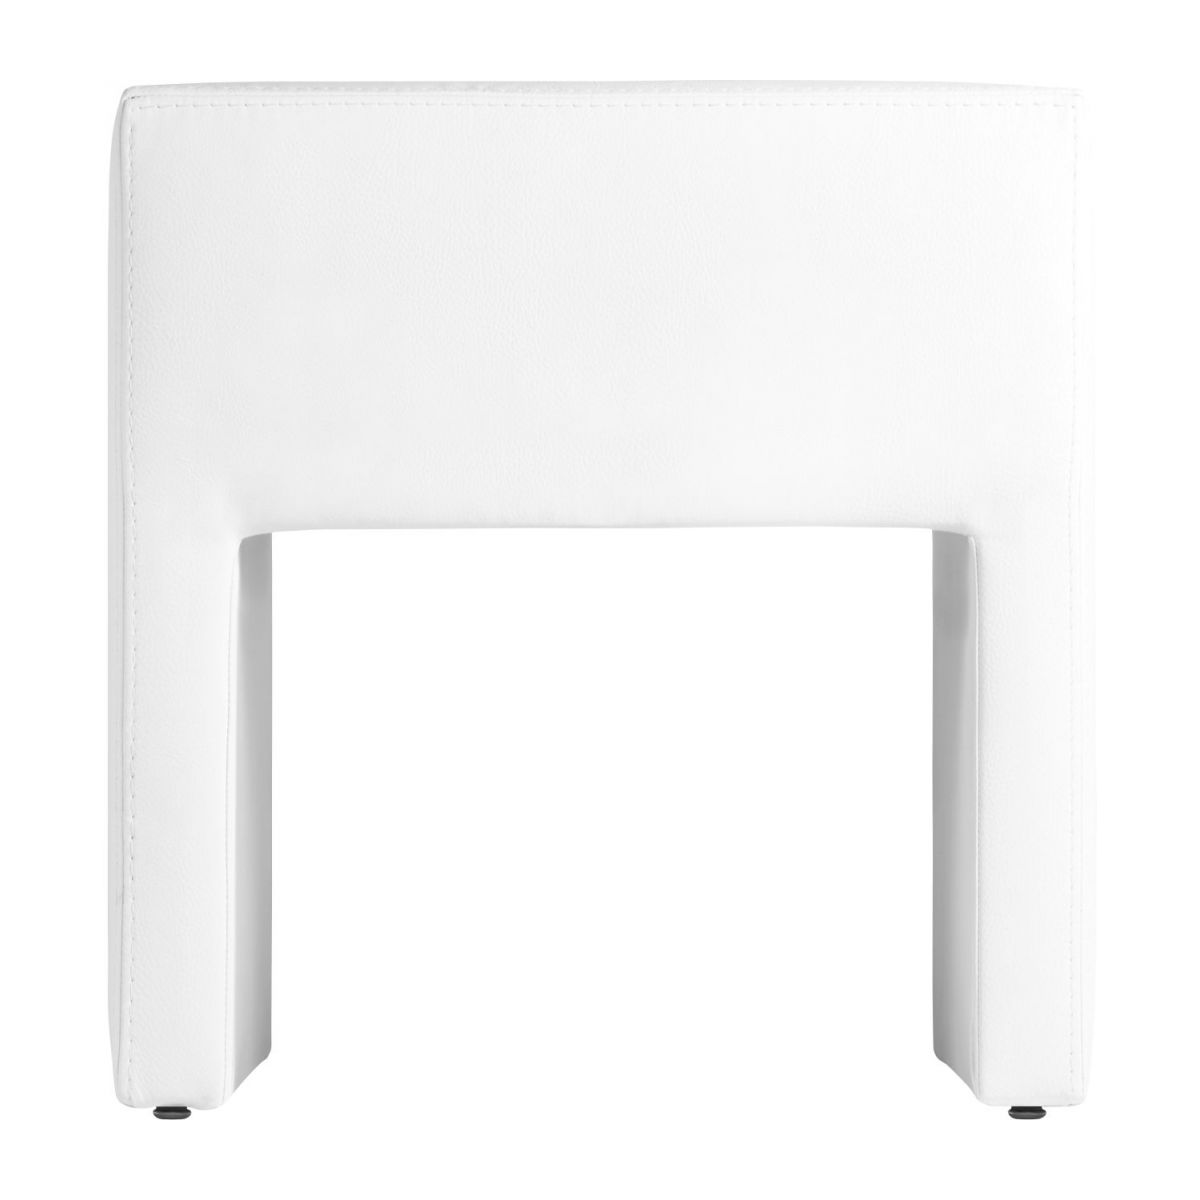 Table de chevet - Blanc n°6